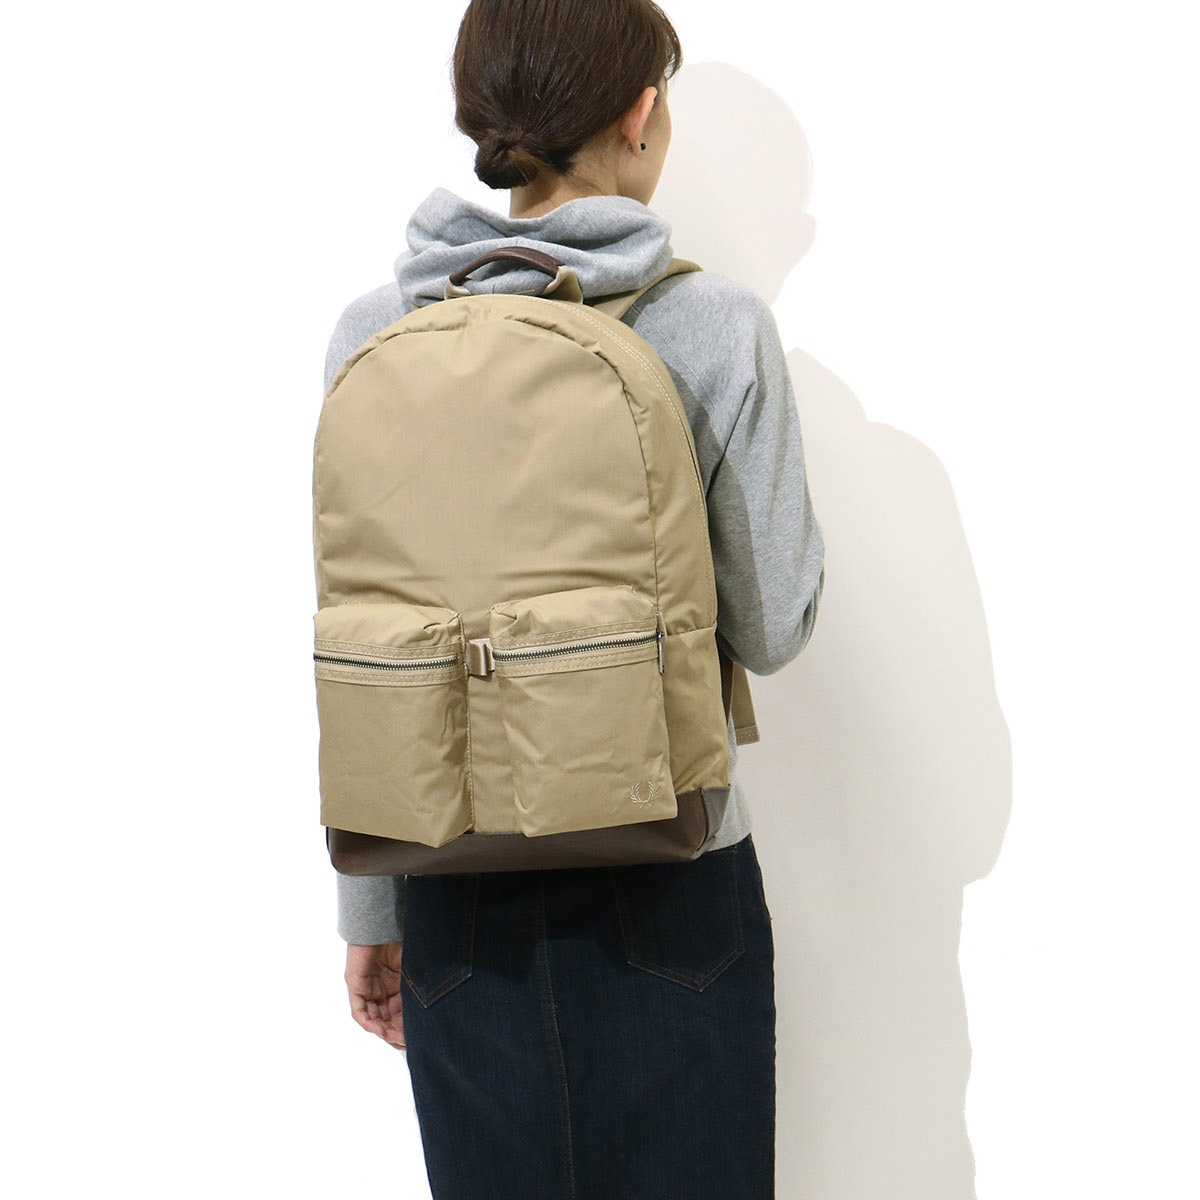 2891fc444 ... FRED PERRY Backpack BACPACK Daypack canvas Men's Women's school F9289  ...